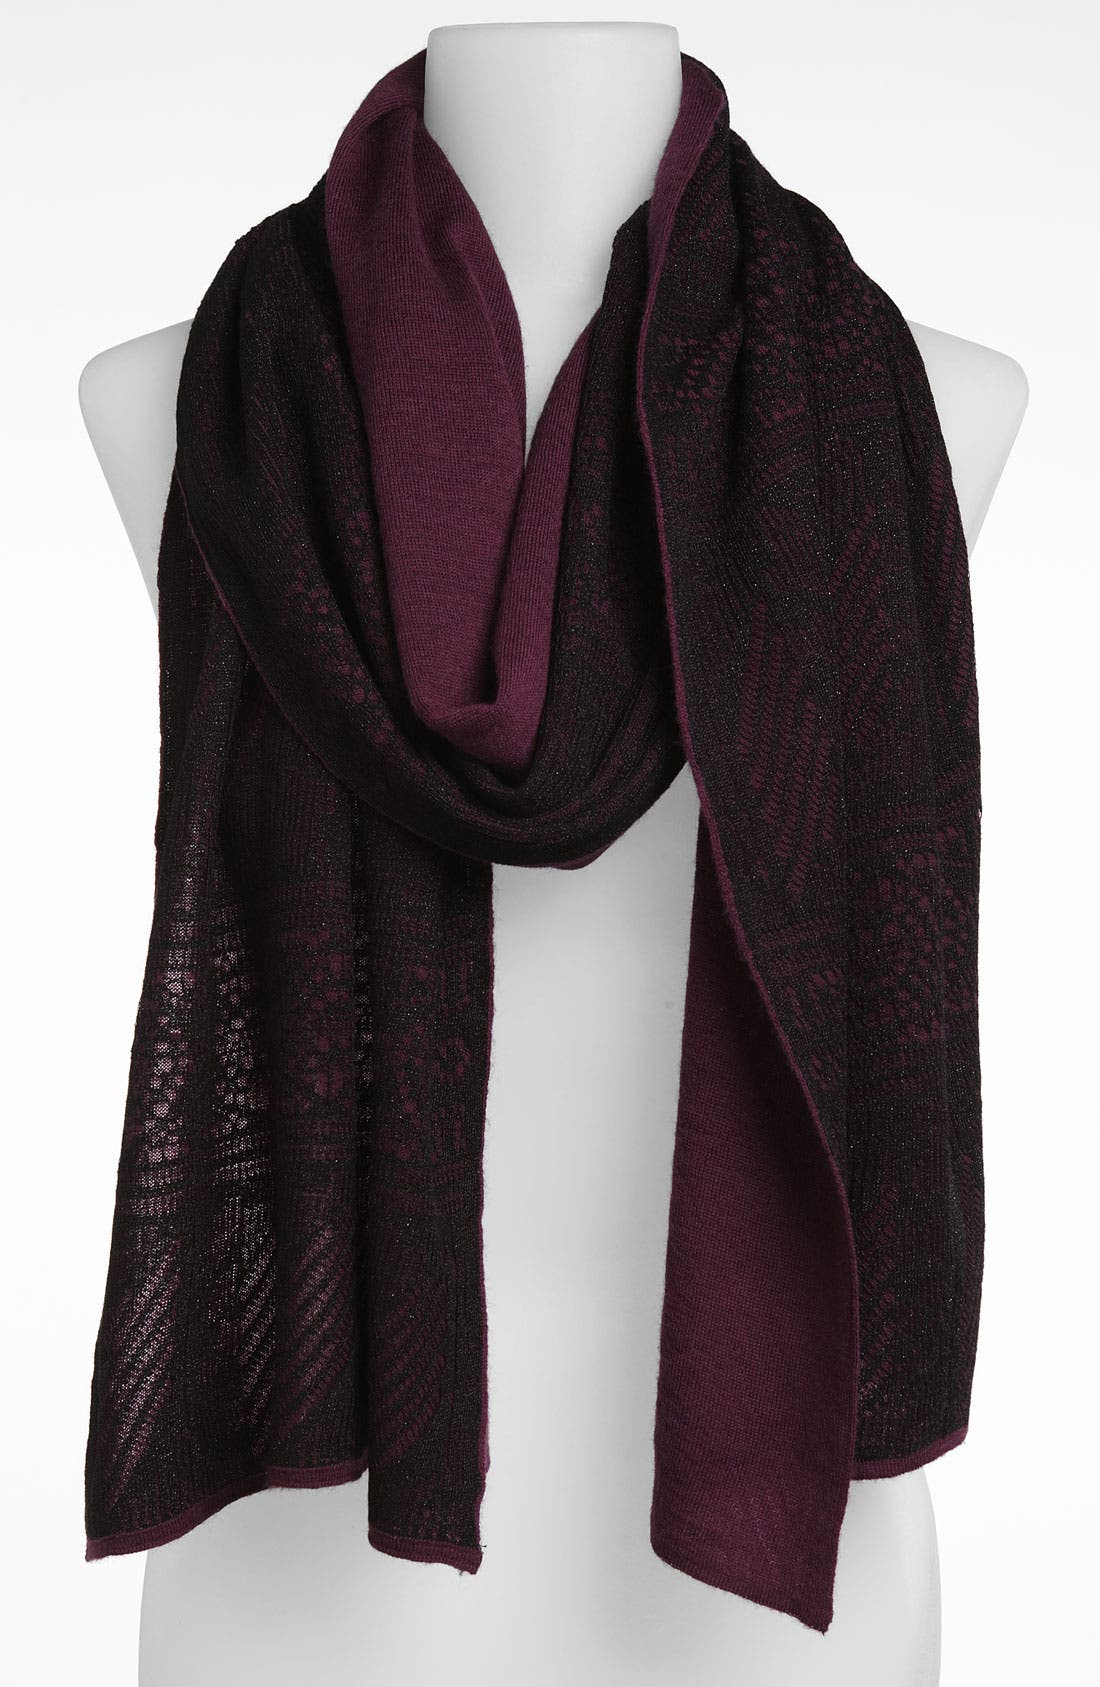 Main Image - Nordstrom Collection 'Metallic Lace' Wool Blend Scarf